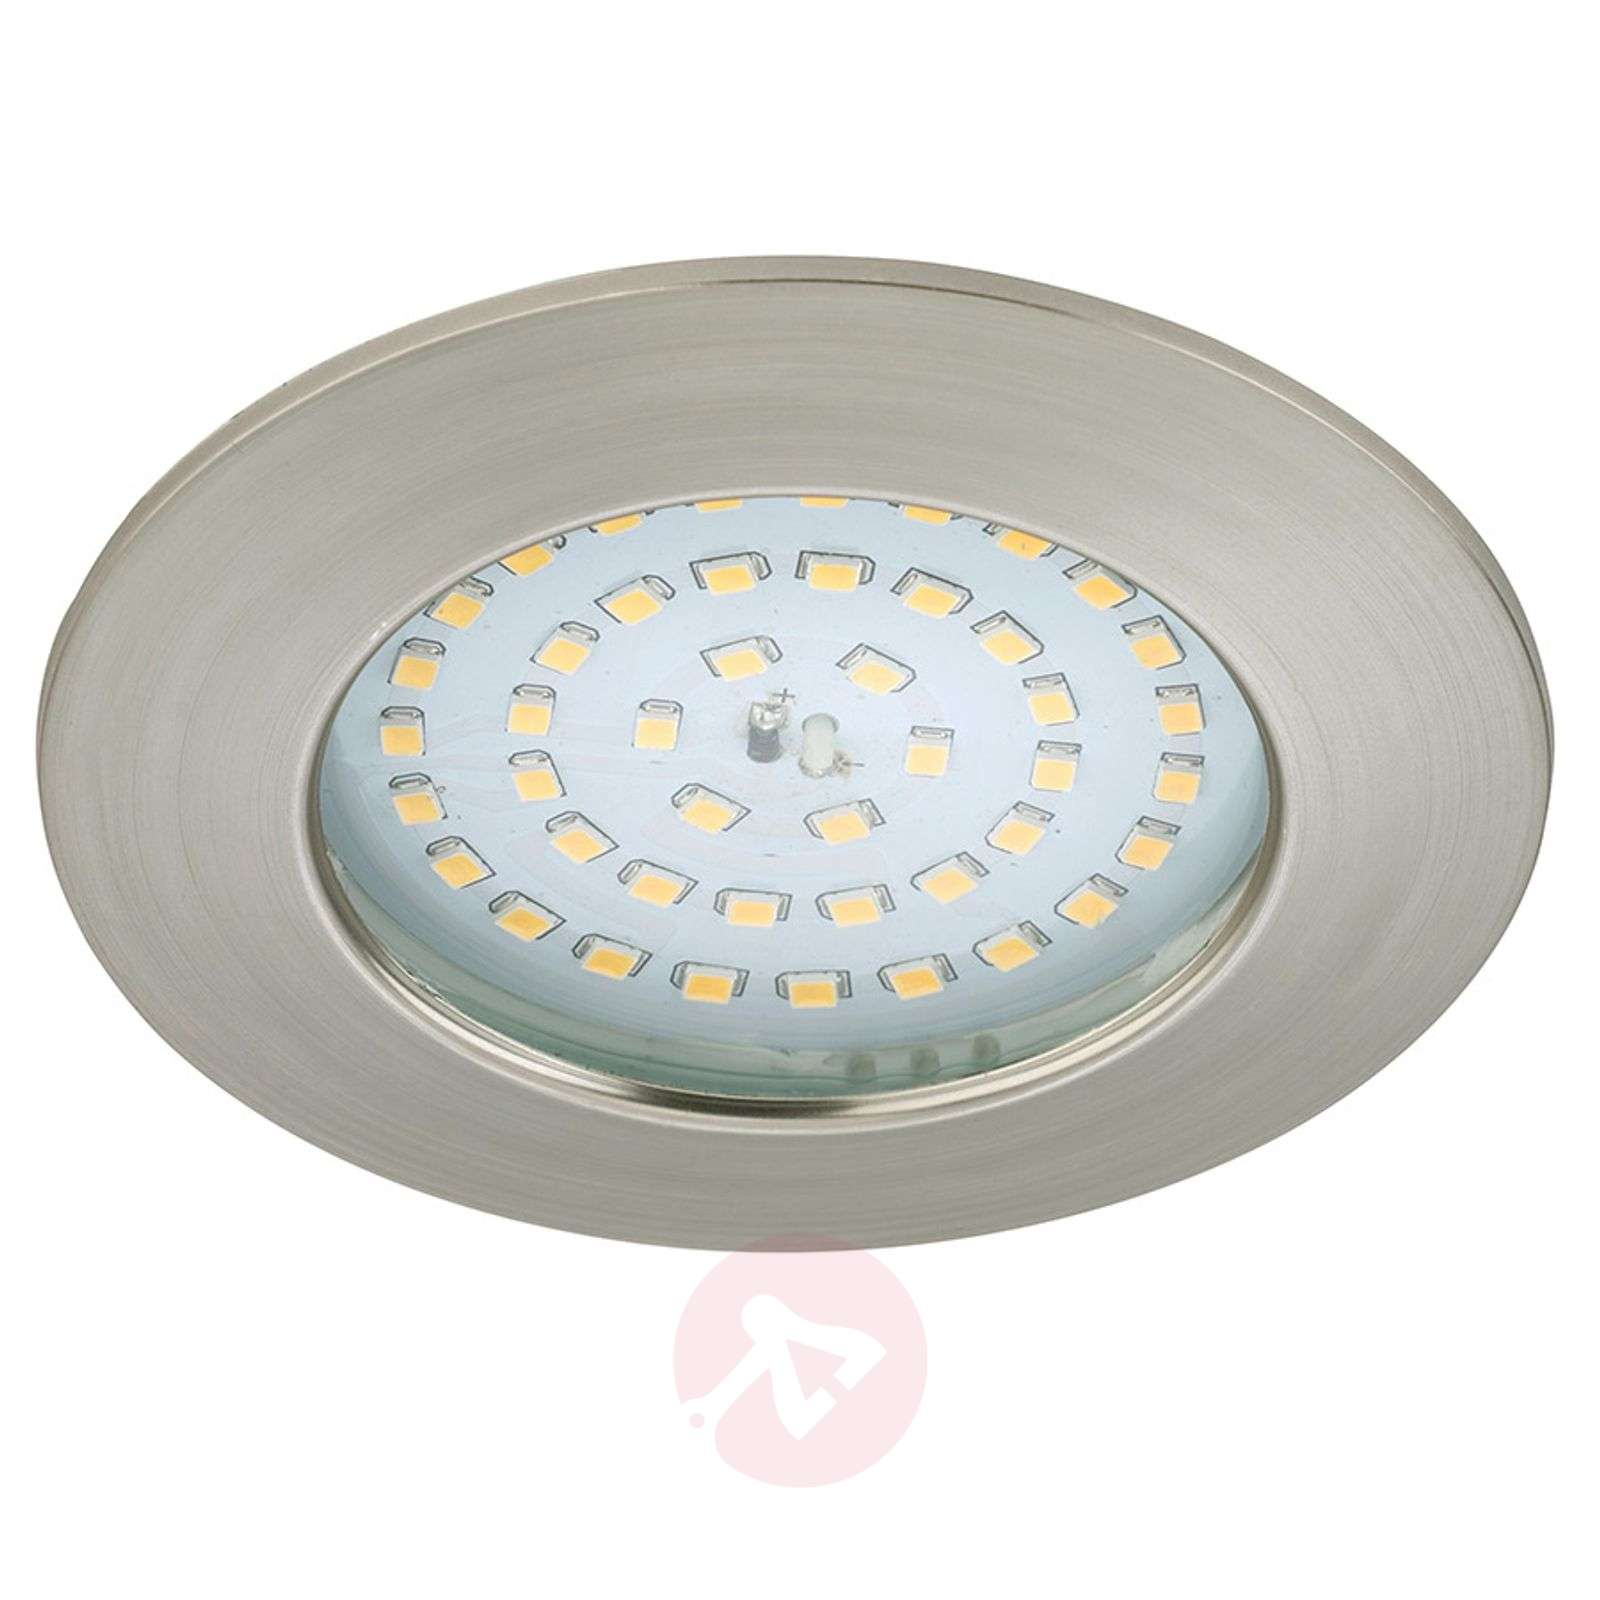 Spot encastré LED Carl pour l'ext., nickel mat-1510337-01